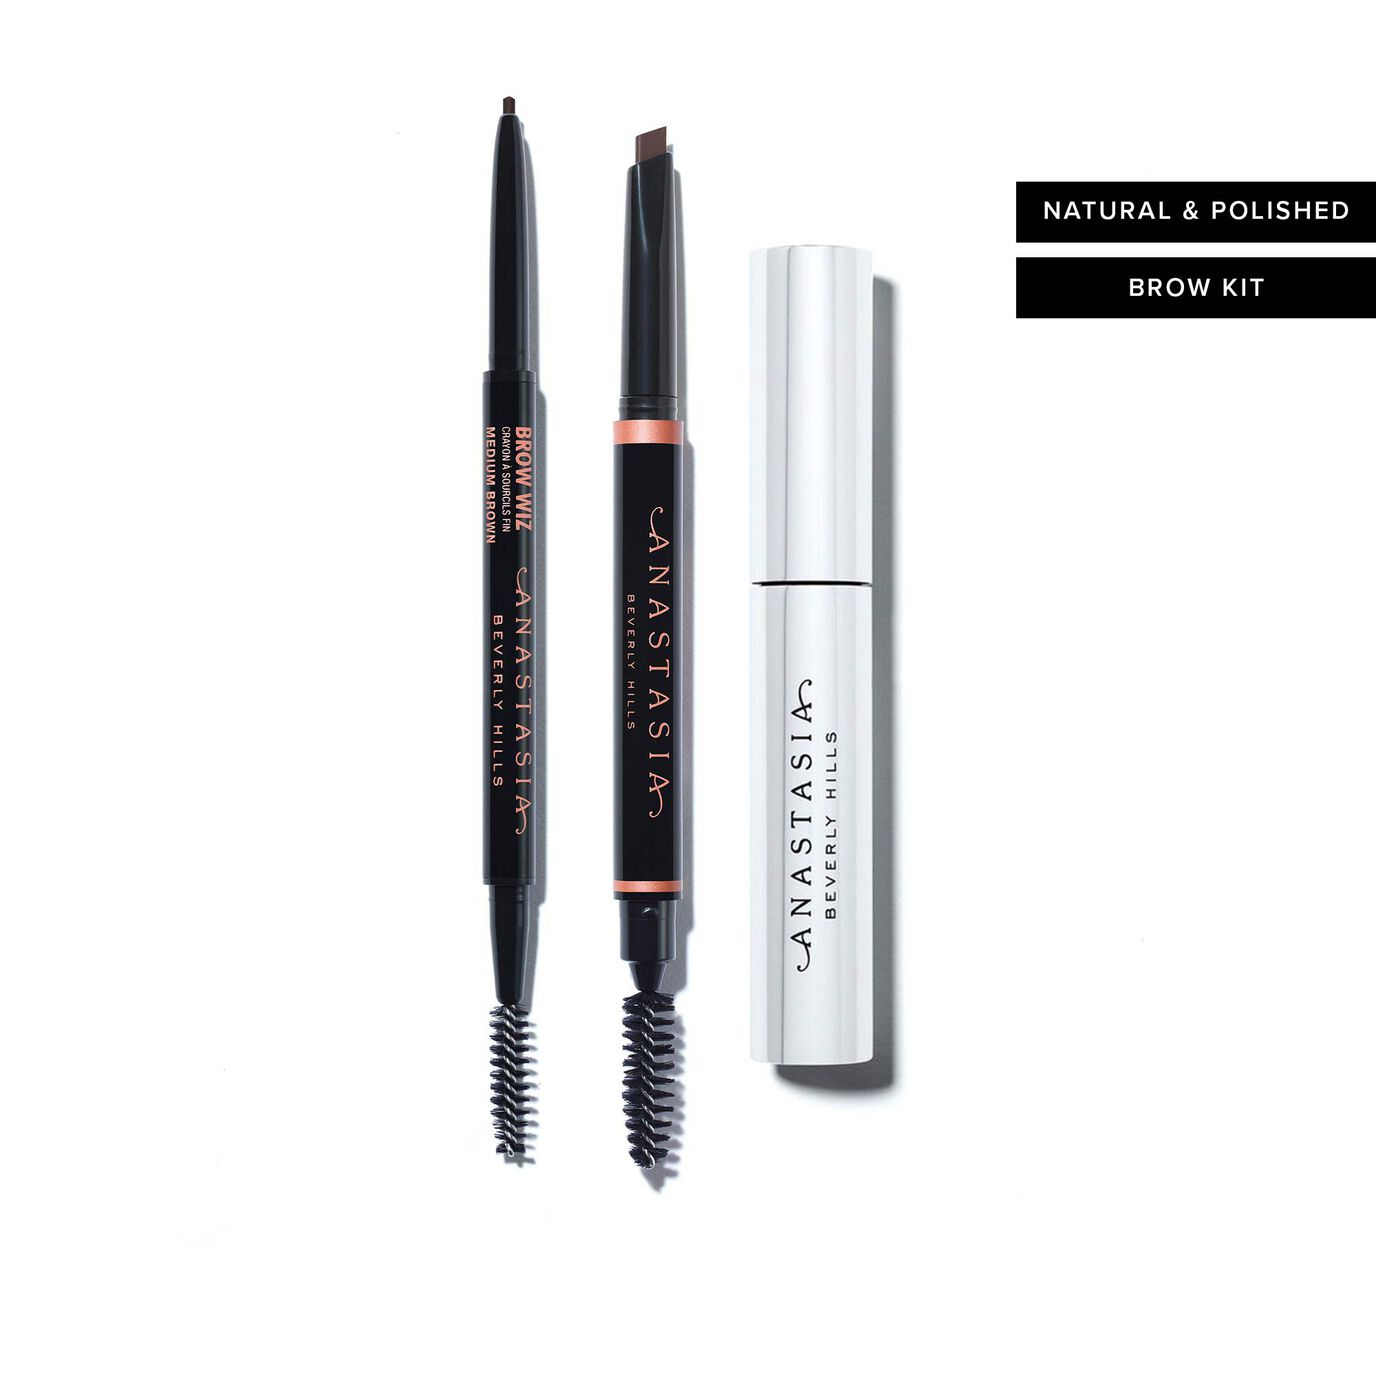 Natural & Polished Brow Kit - Soft Brown and Medium Brown